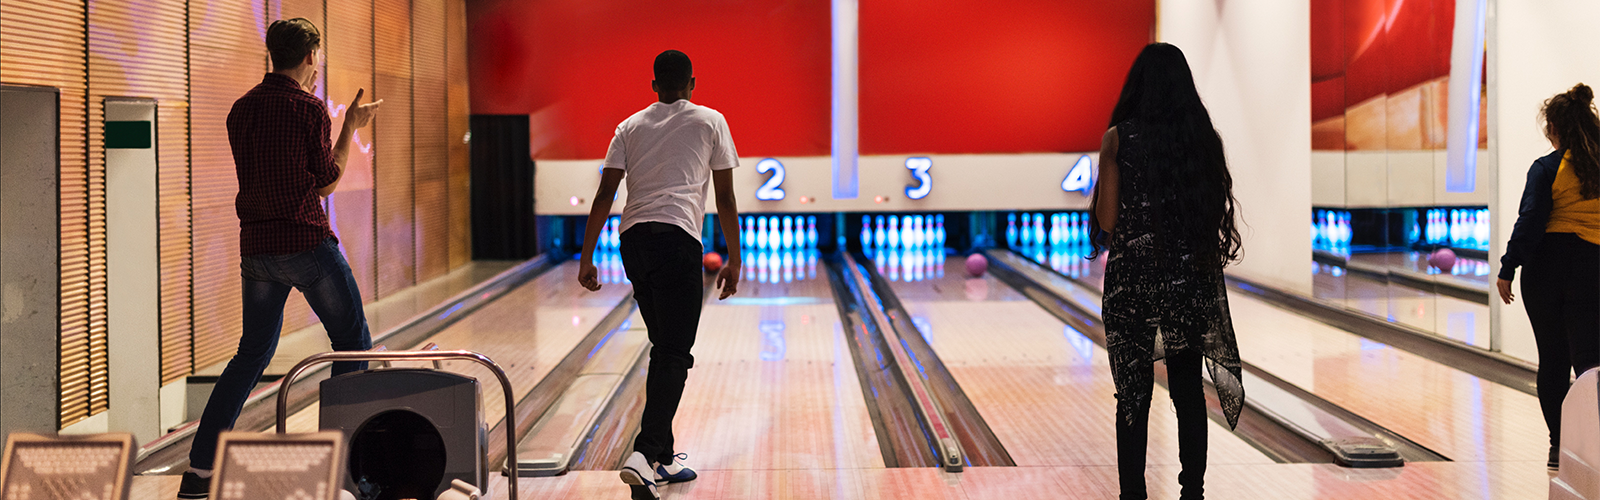 Four people at a bowling alley using lanes 1 through 4. Each is waiting for their ball to hit the pins. Picture by rawpixel on unsplash.